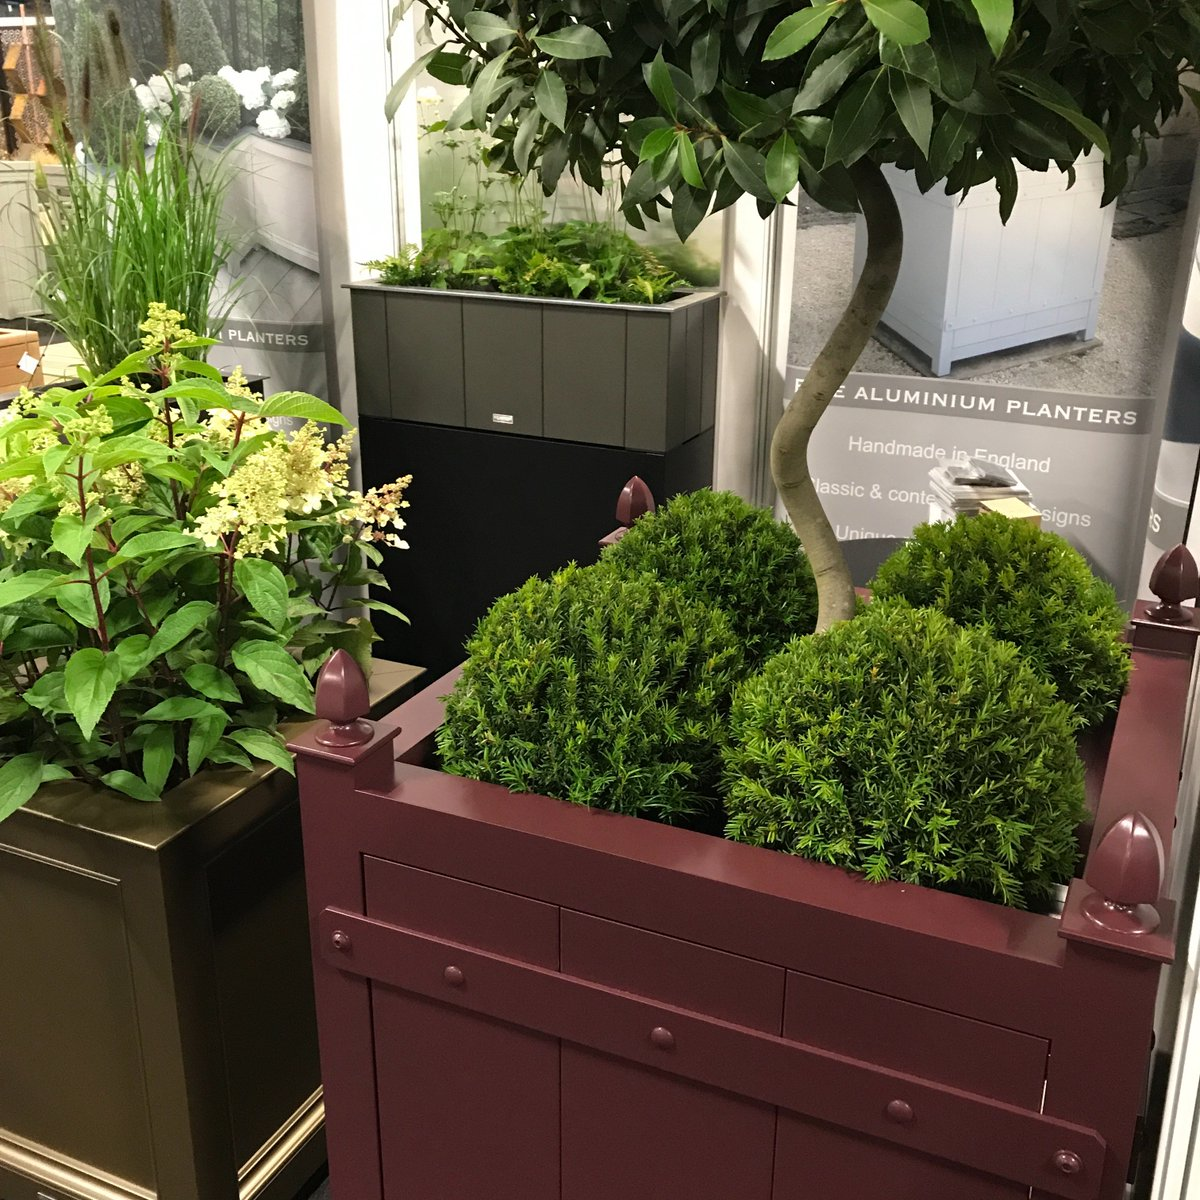 Looking forward to seeing everyone today @LandscapeEvent. Stop by B23 to see the new metallics. #planters #aluminiumplanters #madeinengland<br>http://pic.twitter.com/KrAKwaSsoe